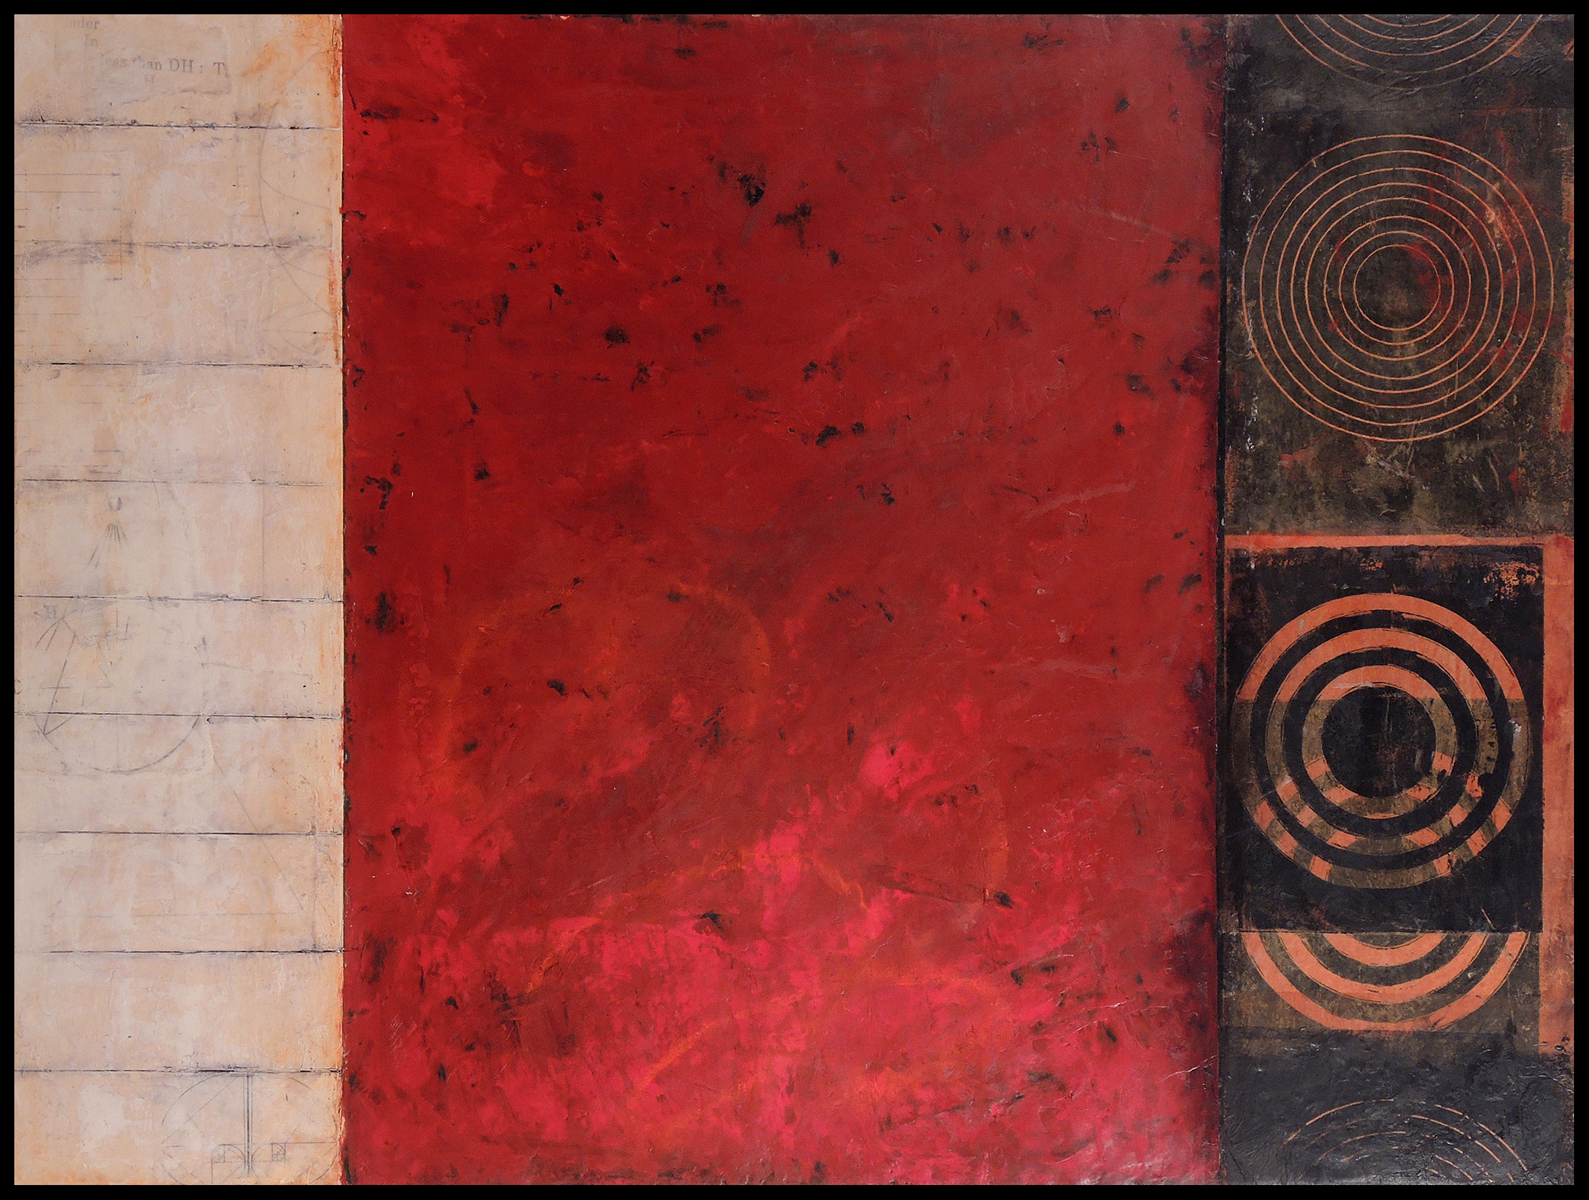 """Near, 31"""" x 41"""" x 1.5"""", encaustic and oil on wood panel, 2013"""